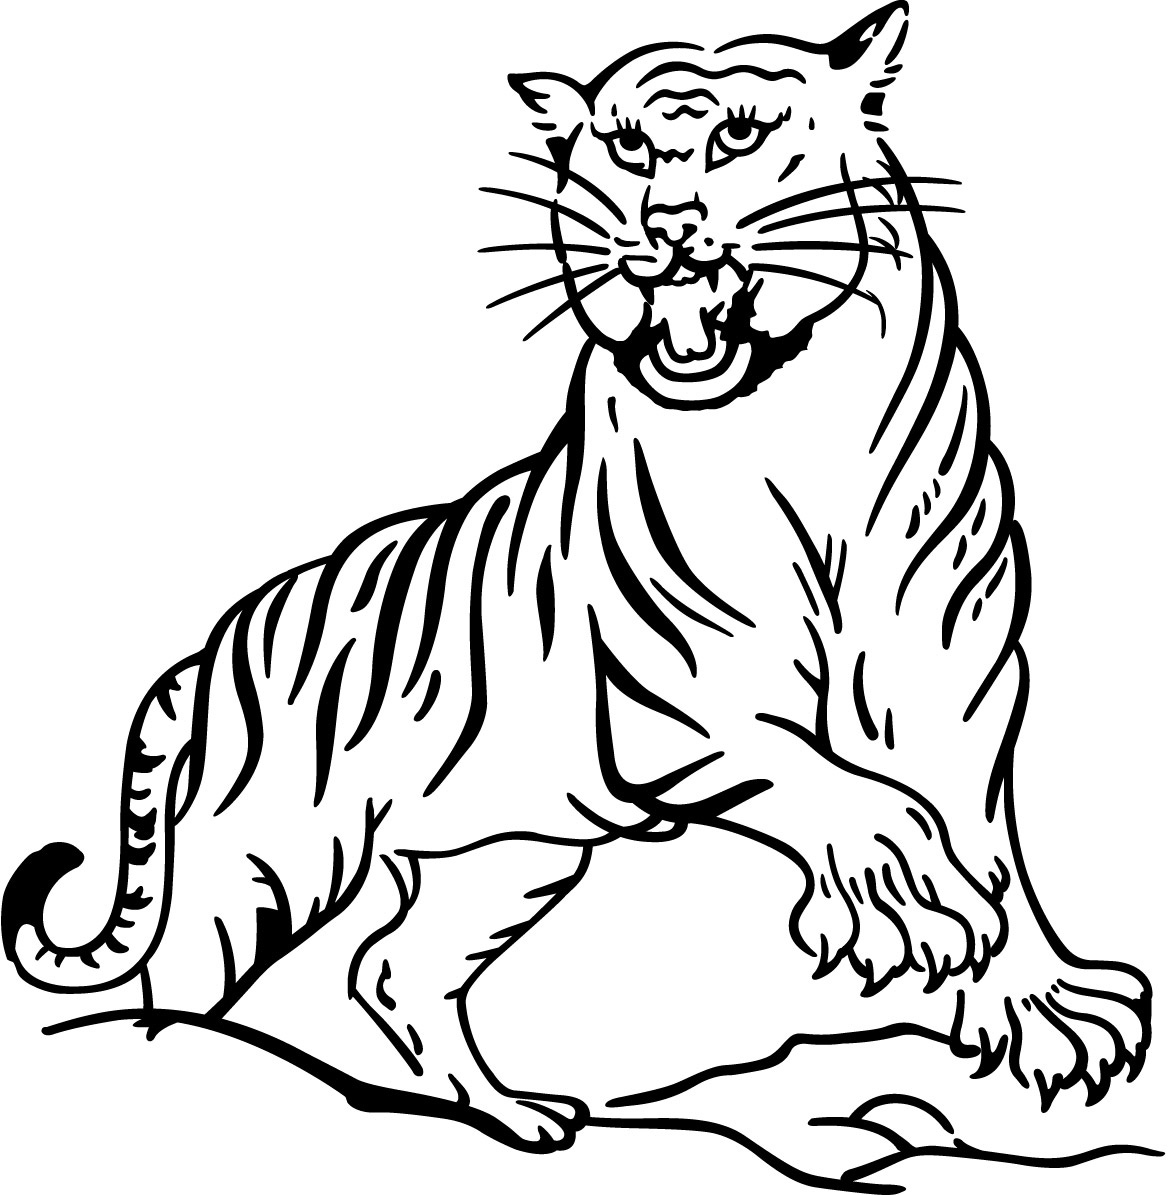 tigerwoods free printable coloring pages - photo#3